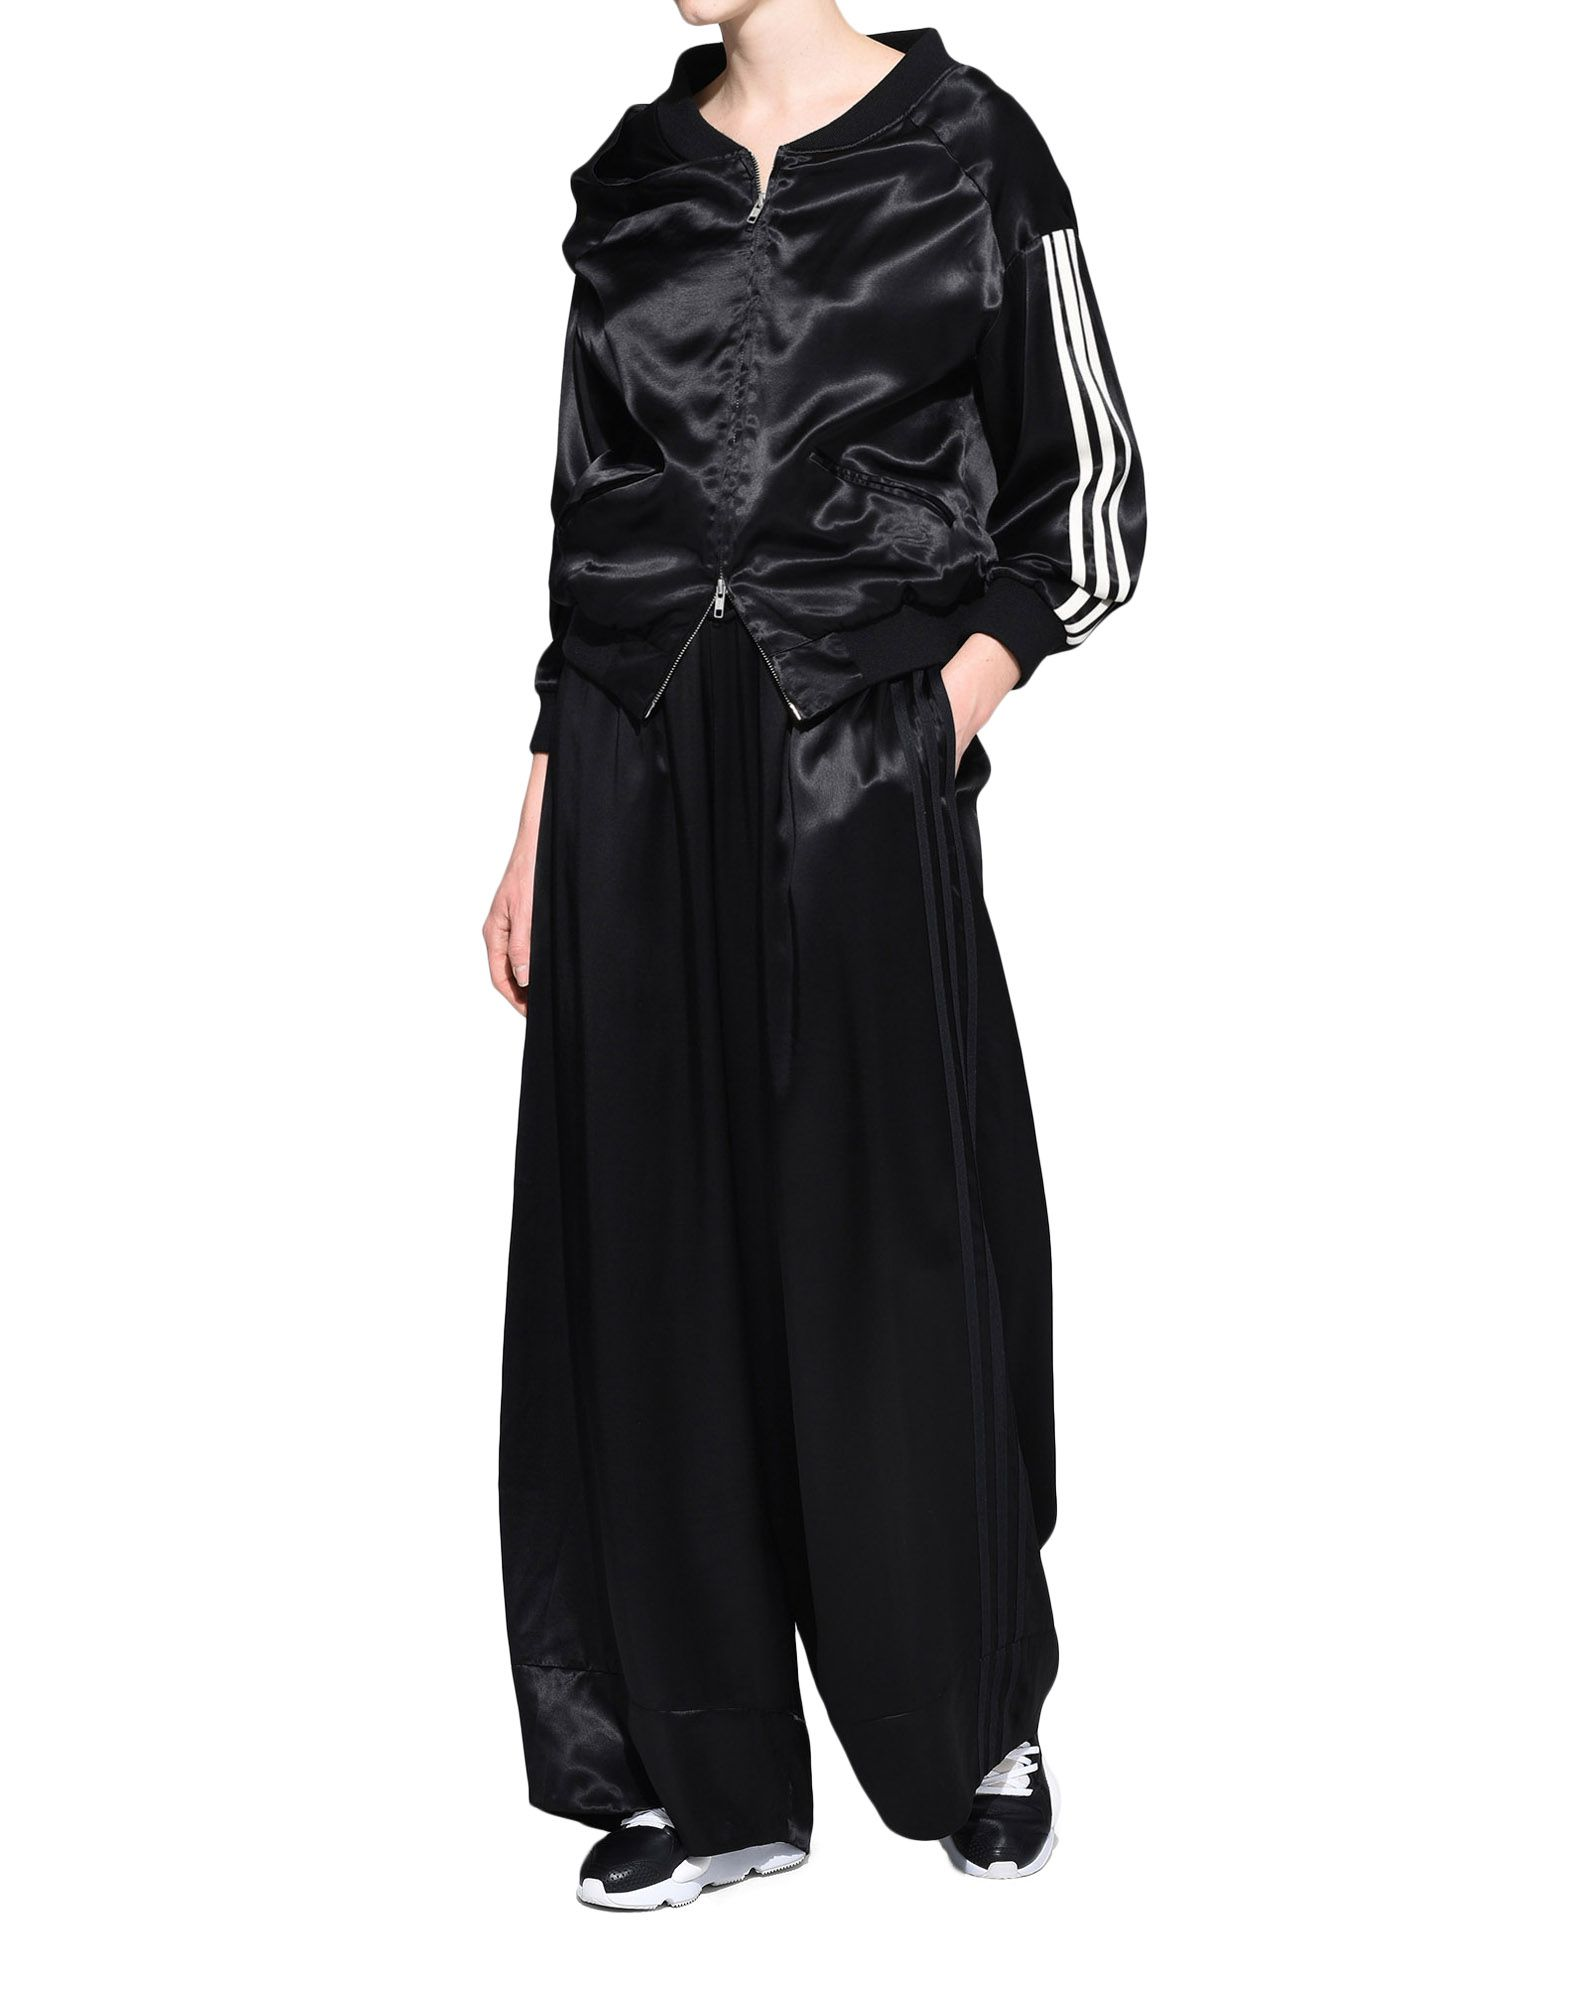 Y-3 Y-3 3-Stripes Lux Wide Track Pants Casual pants Woman a